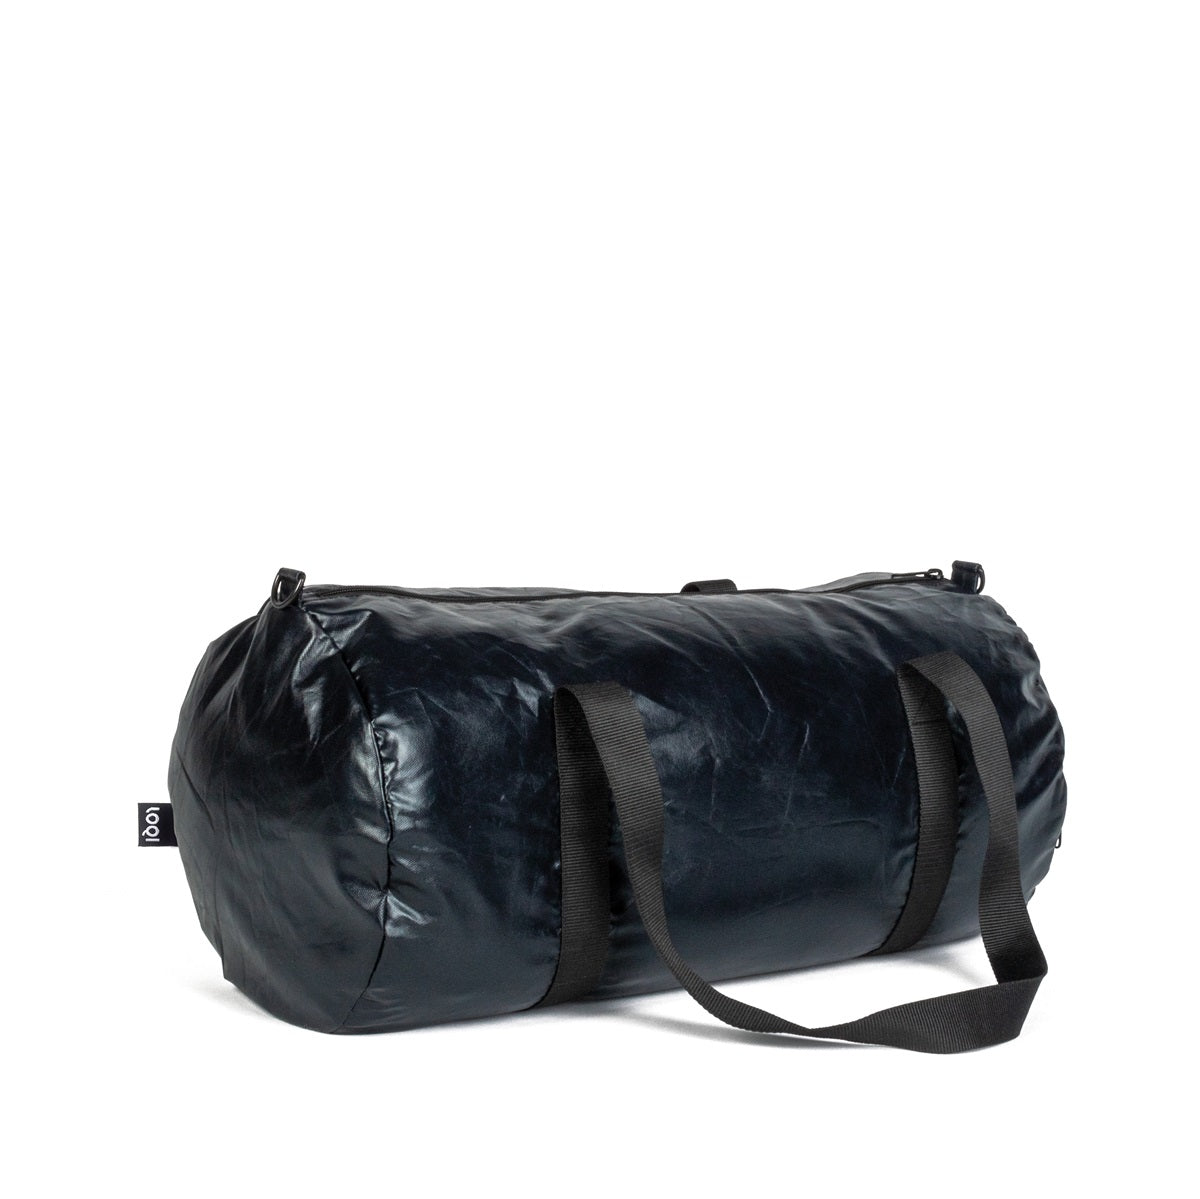 LOQI Metallic Matt Black Weekender